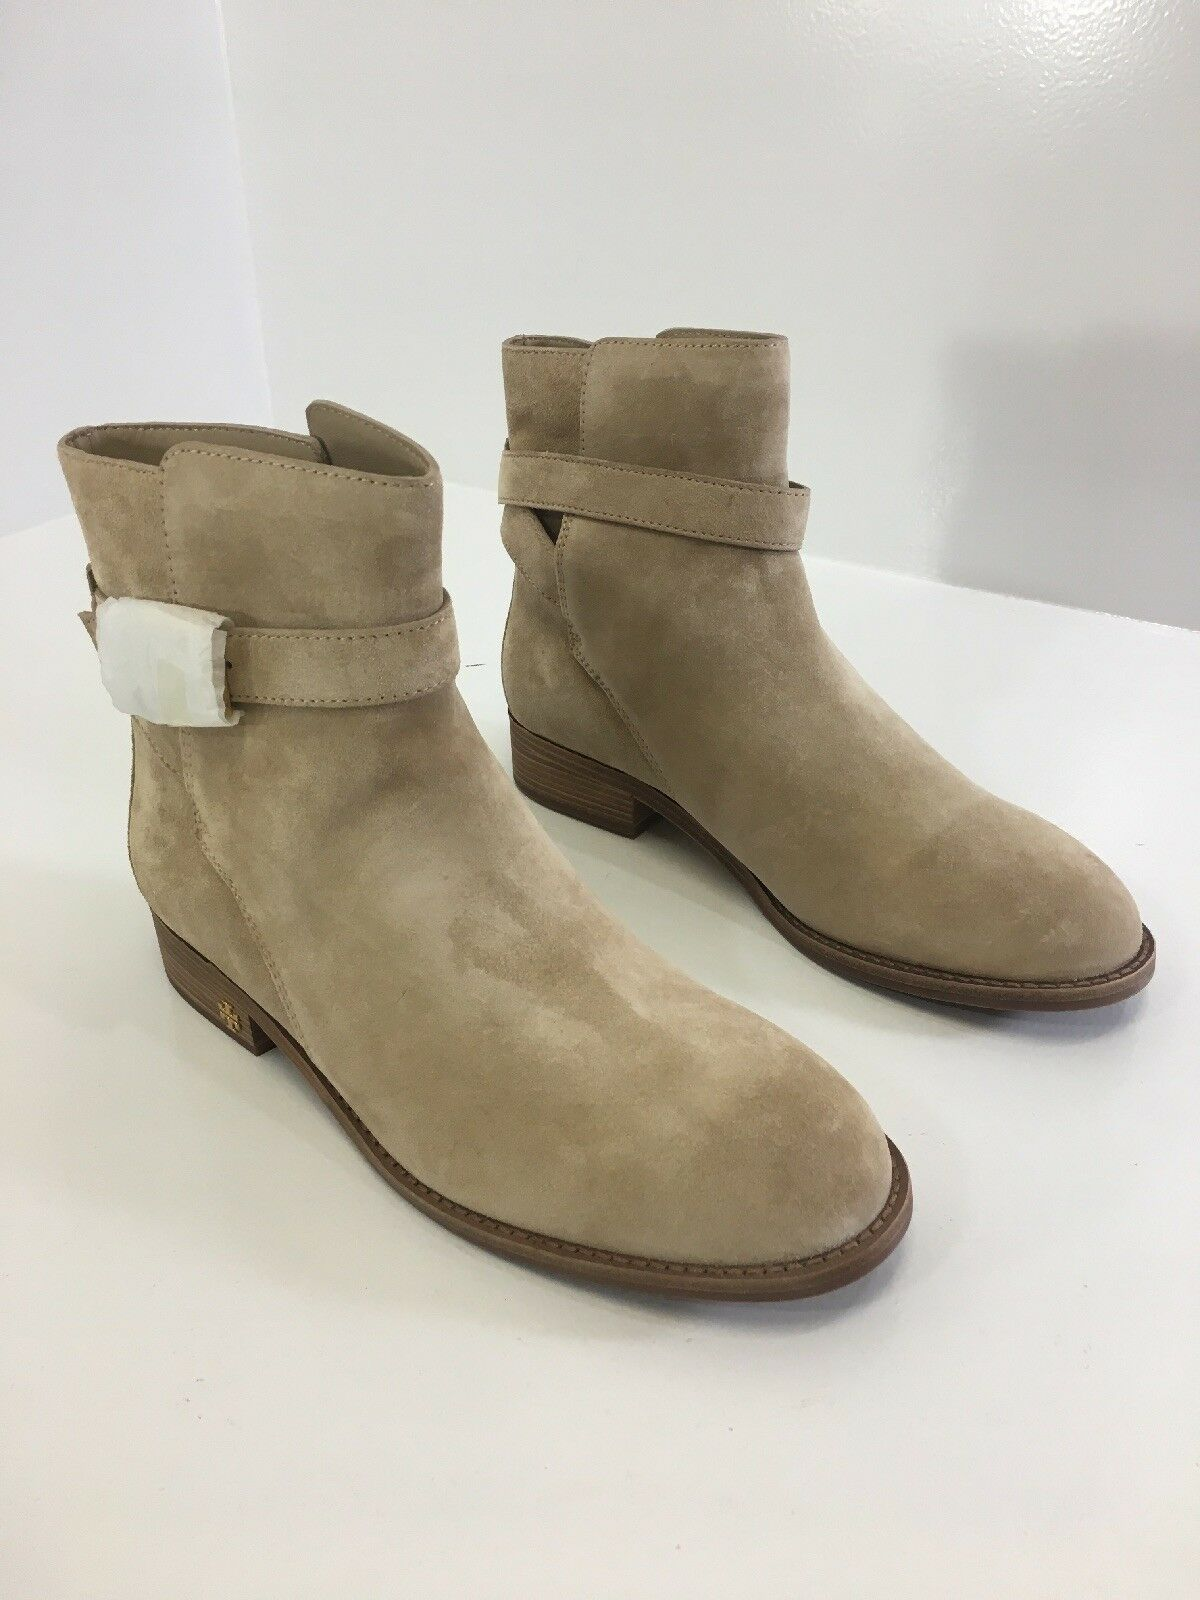 TORY BURCH WOMENS BROOKE SUEDE ANKLE BOOTS BOOTS BOOTS MOCHA CREAM 9.5 NEW 8c41a4